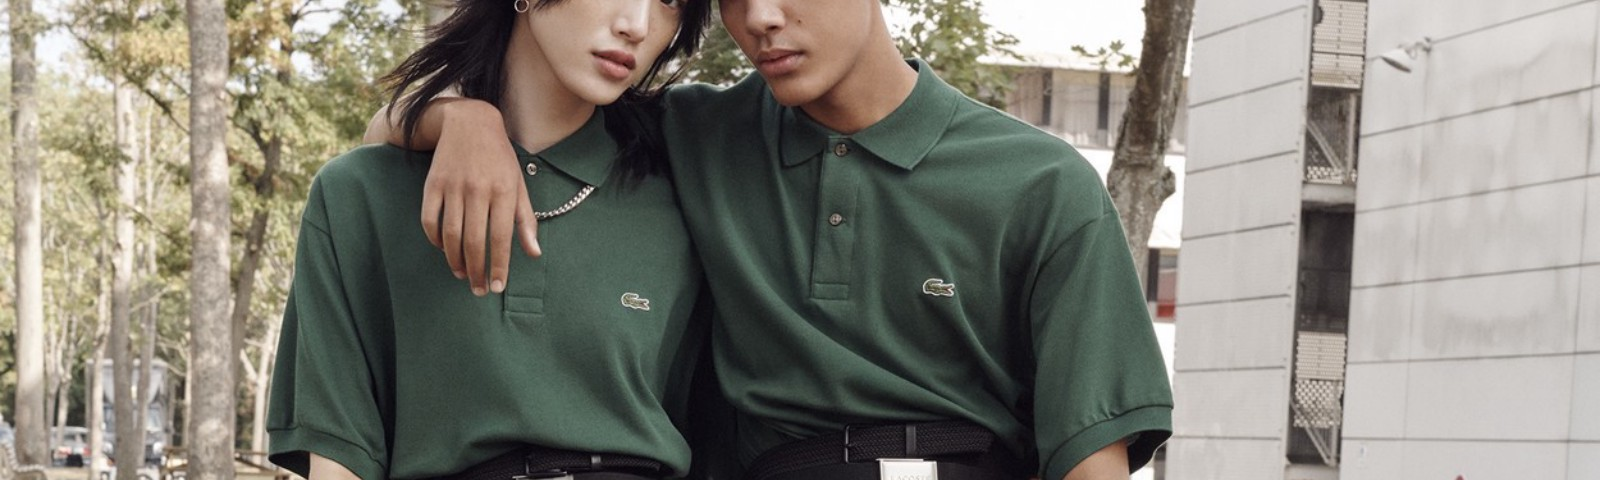 Two models pose for Lacoste's unisex campaign.